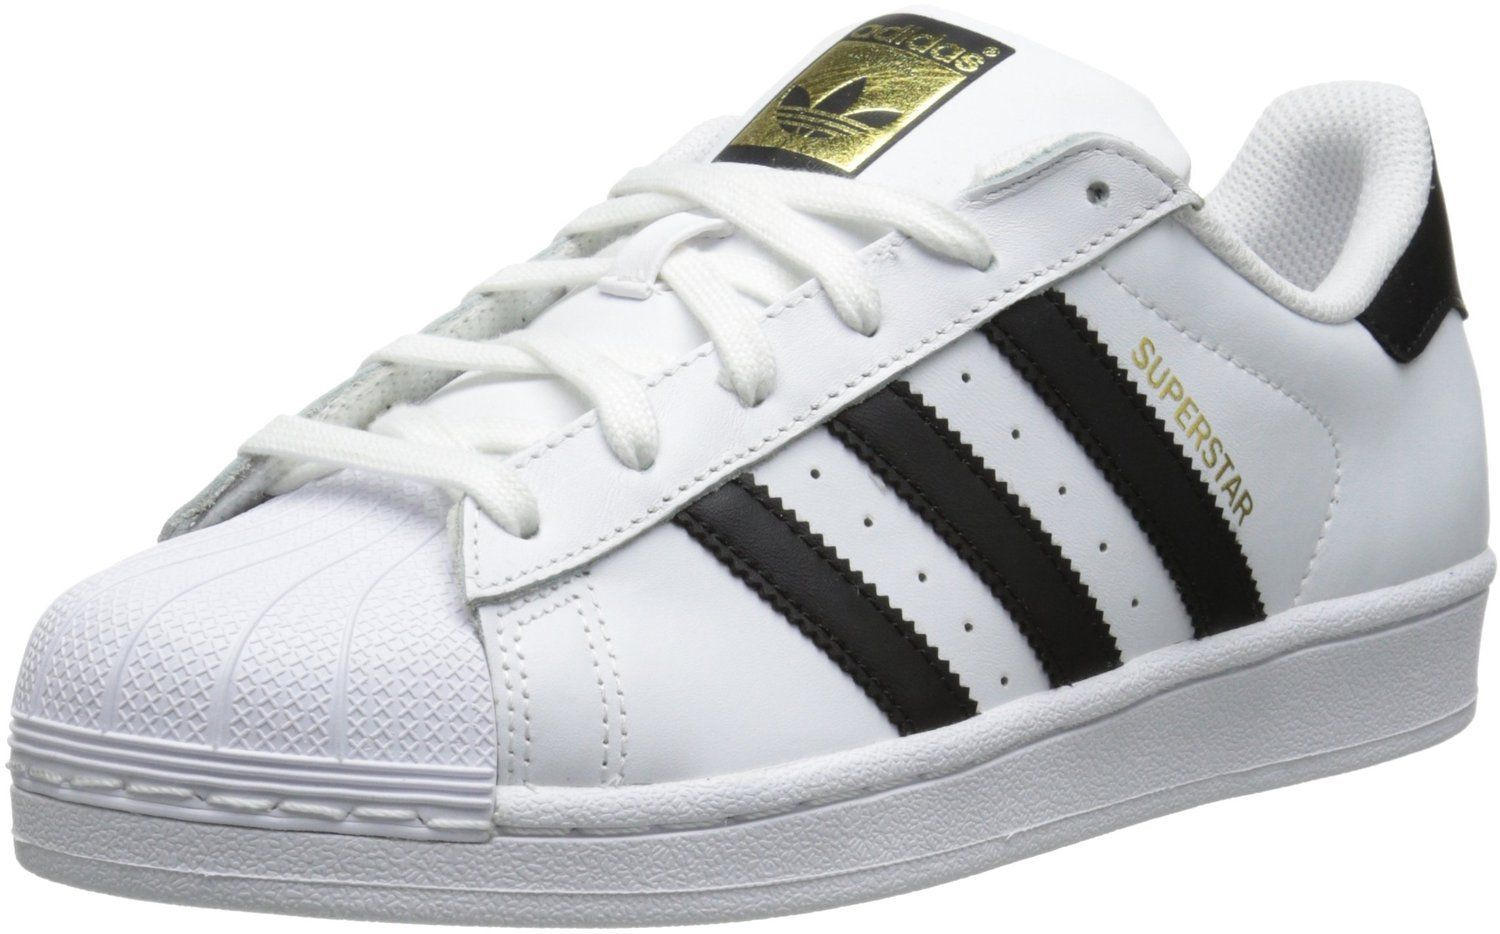 Adidas Superstar Sneakers - Fashion